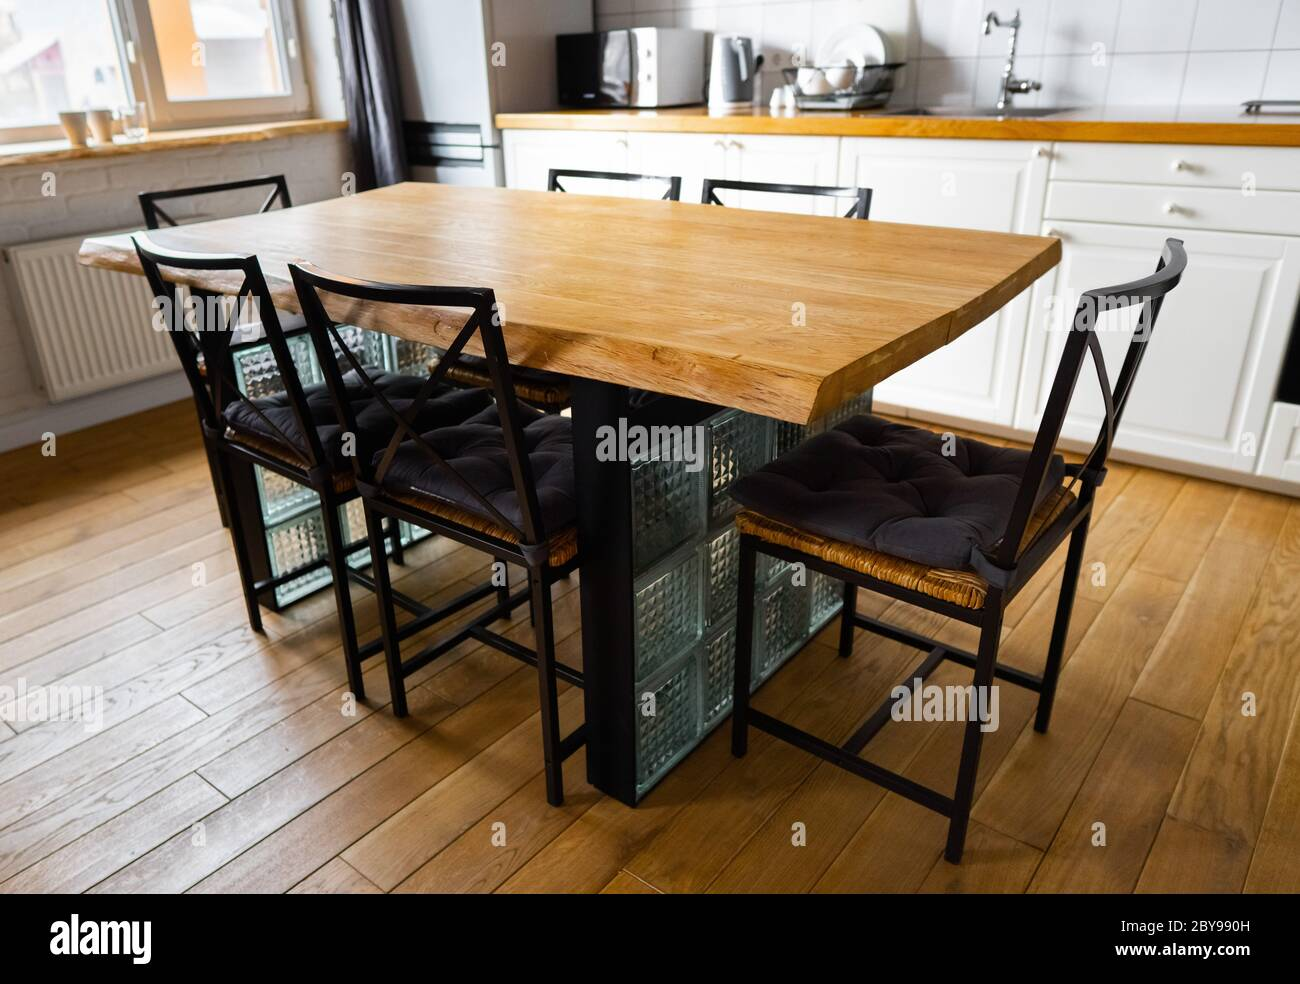 A Big Wooden Dining Table With Glass Blocks And Metal Wicker Chairs And Pillows In Modern Scandinavian An Eat In Kitchen Against Bright White Stock Photo Alamy